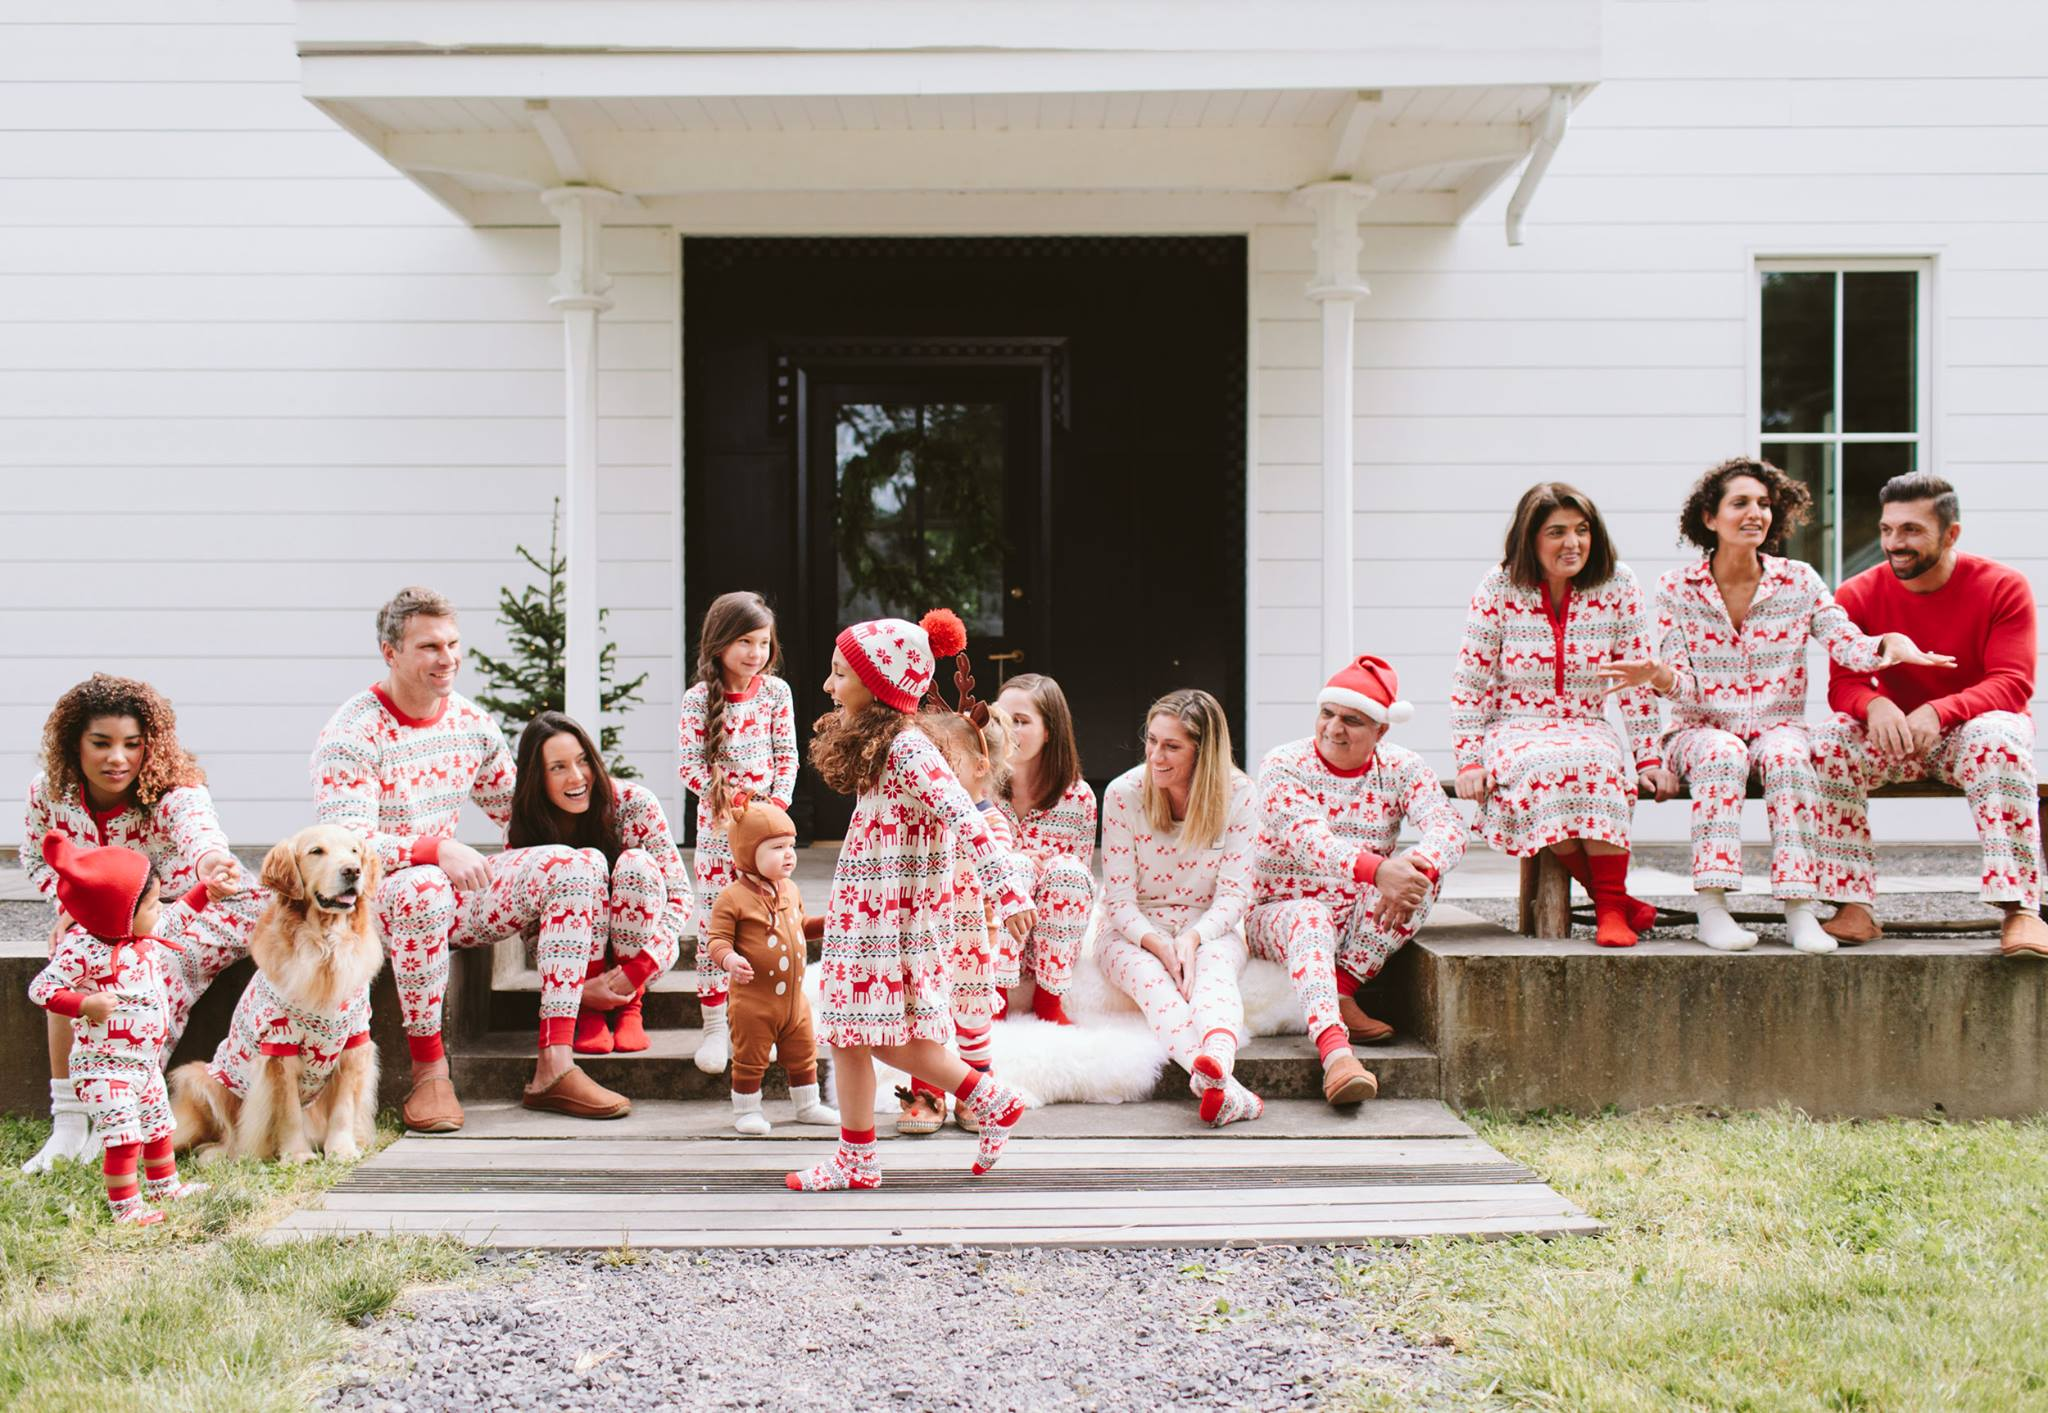 Want to win some FREE pajamas from Hanna Andersson? They are giving away $500 gift cards to 5 lucky winners.